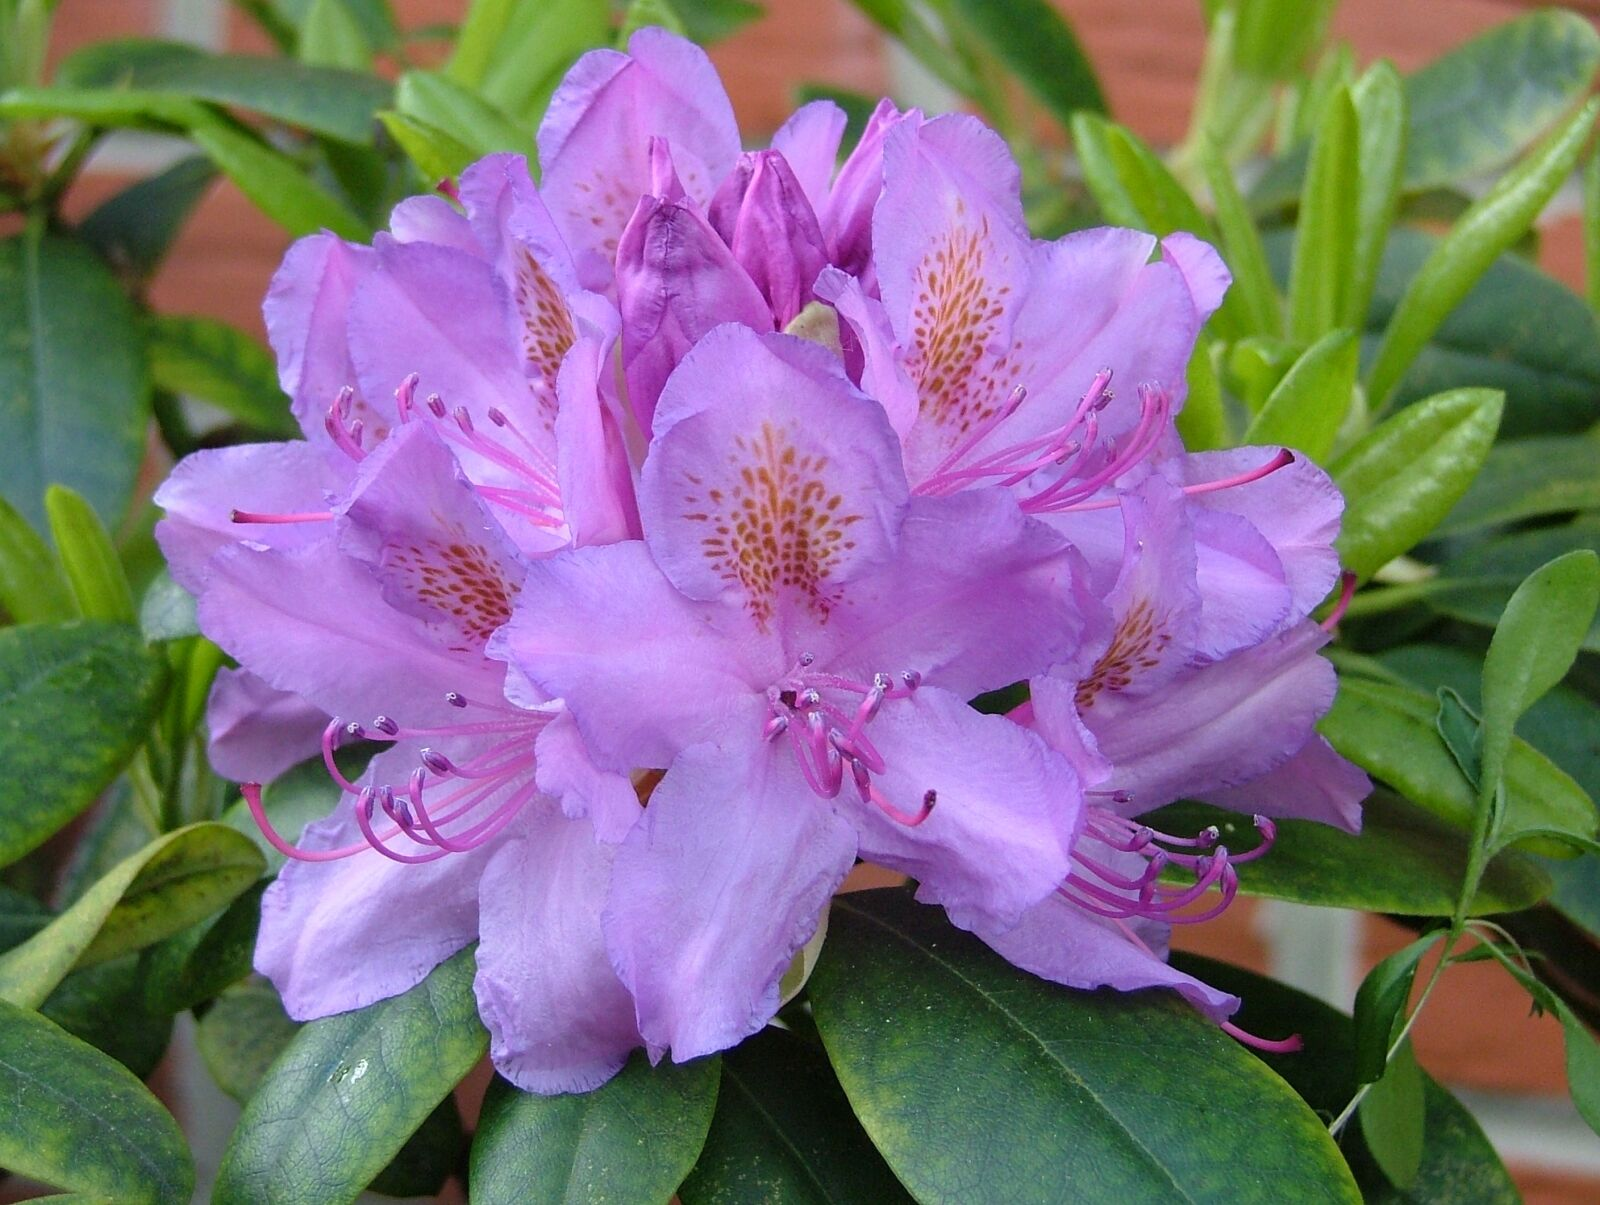 flowers, rhododendron, flowers purple